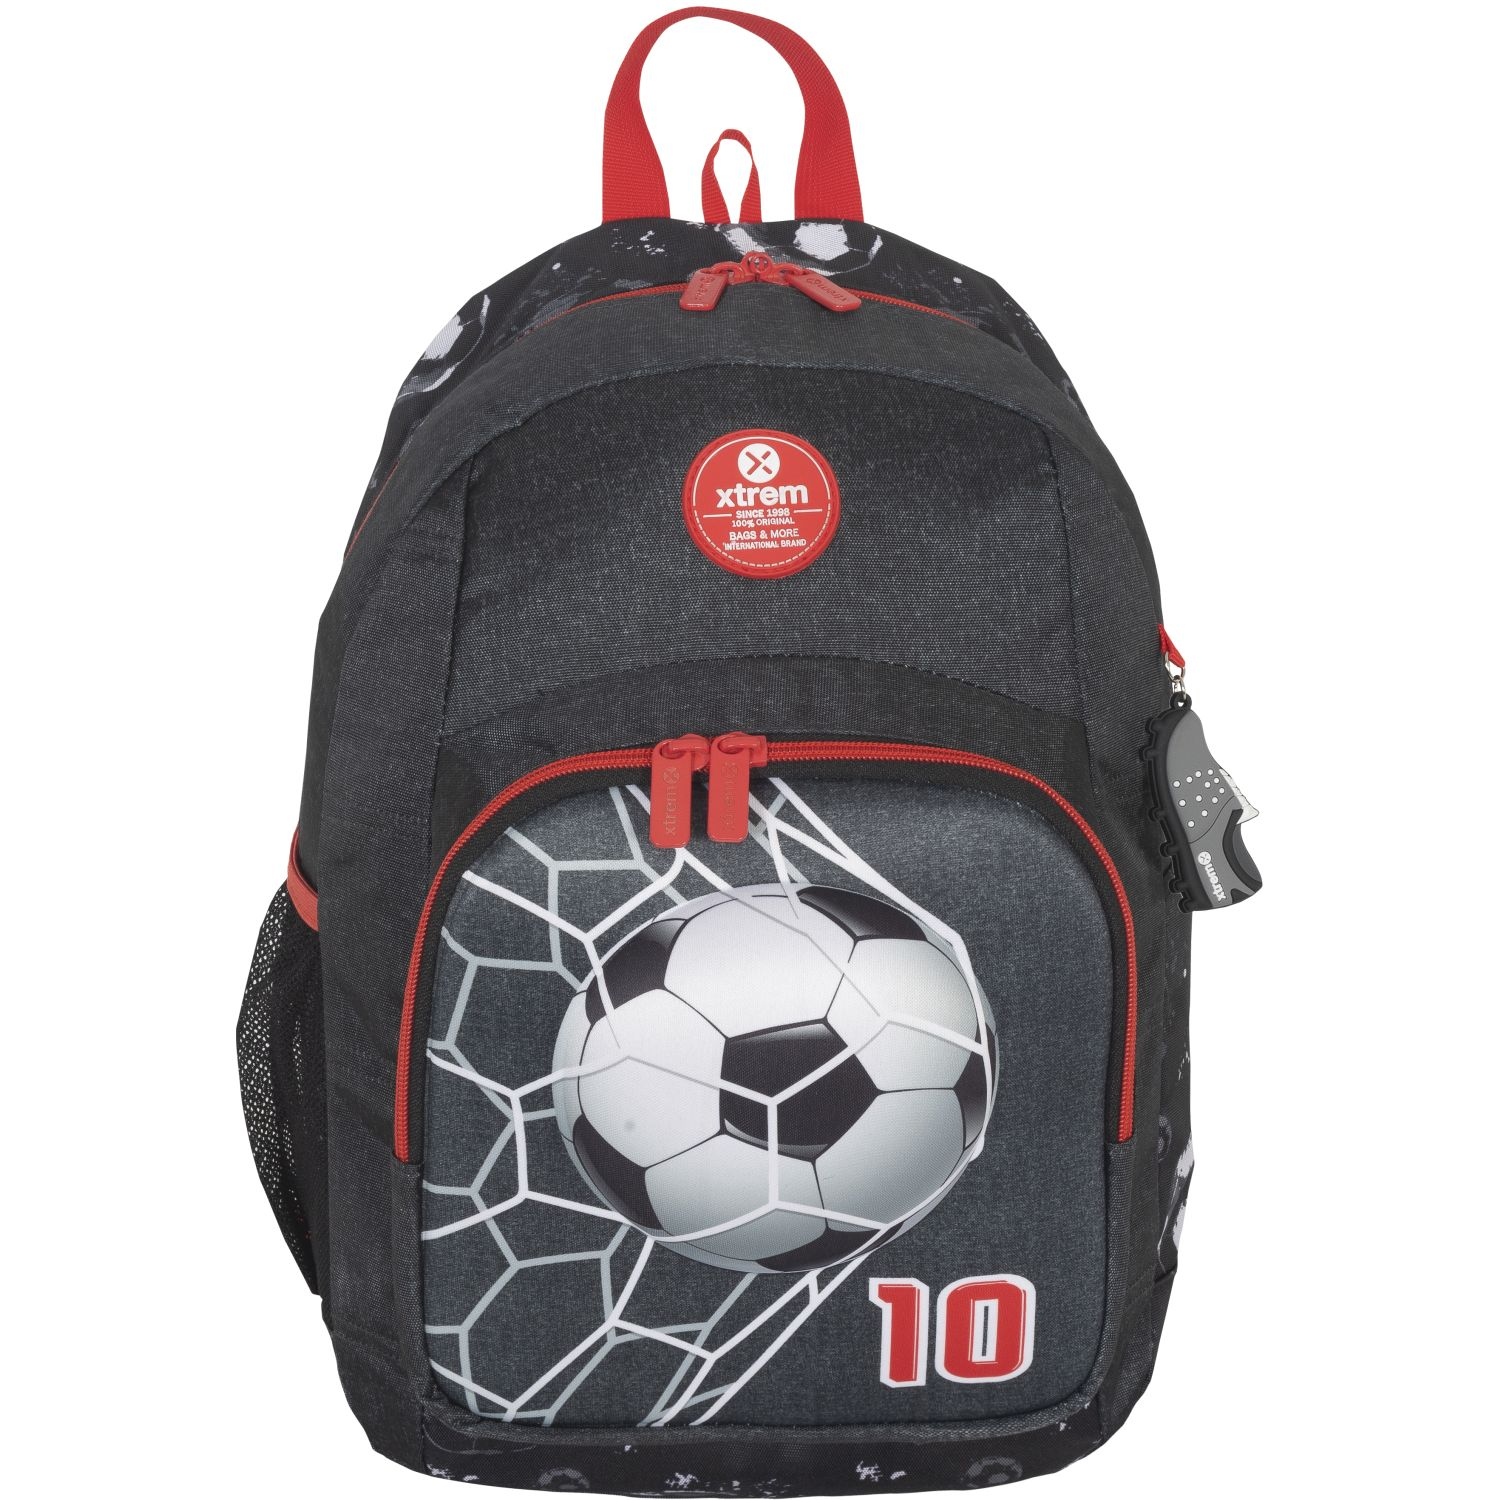 Xtrem backpack soccer net impact 918 Varios mochilas